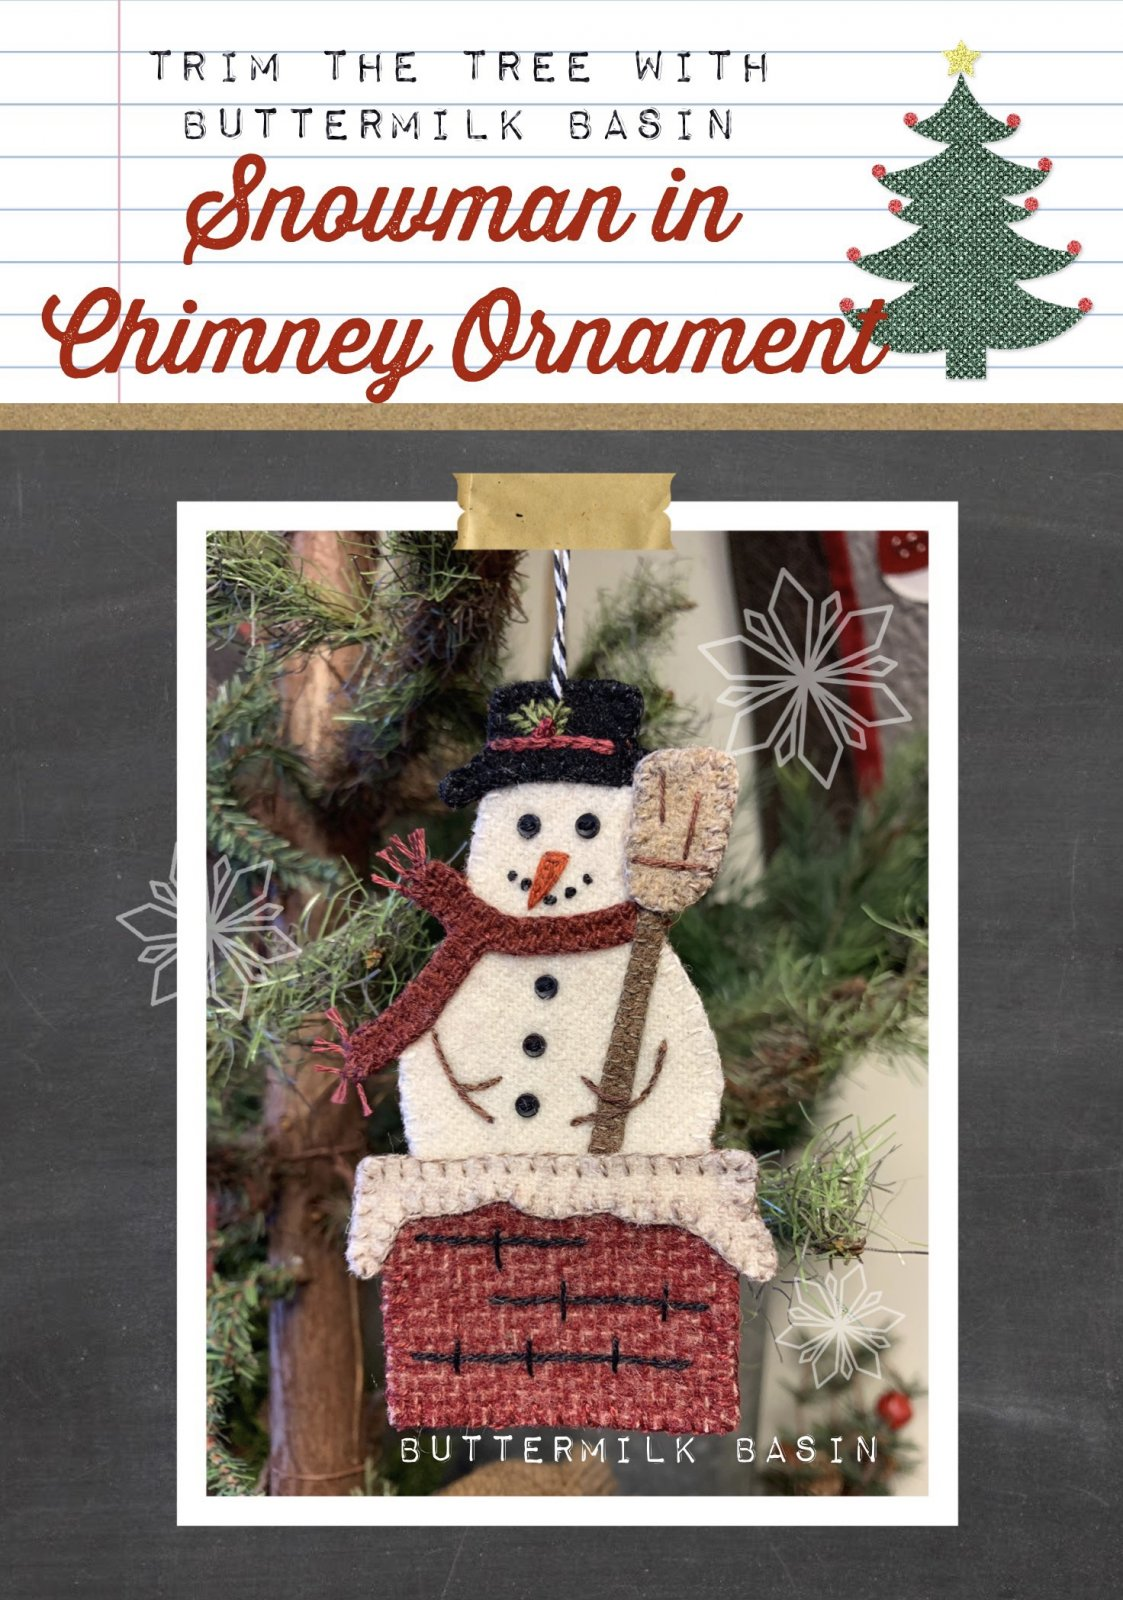 Snowman in Chimney Ornament * Pattern & Kit